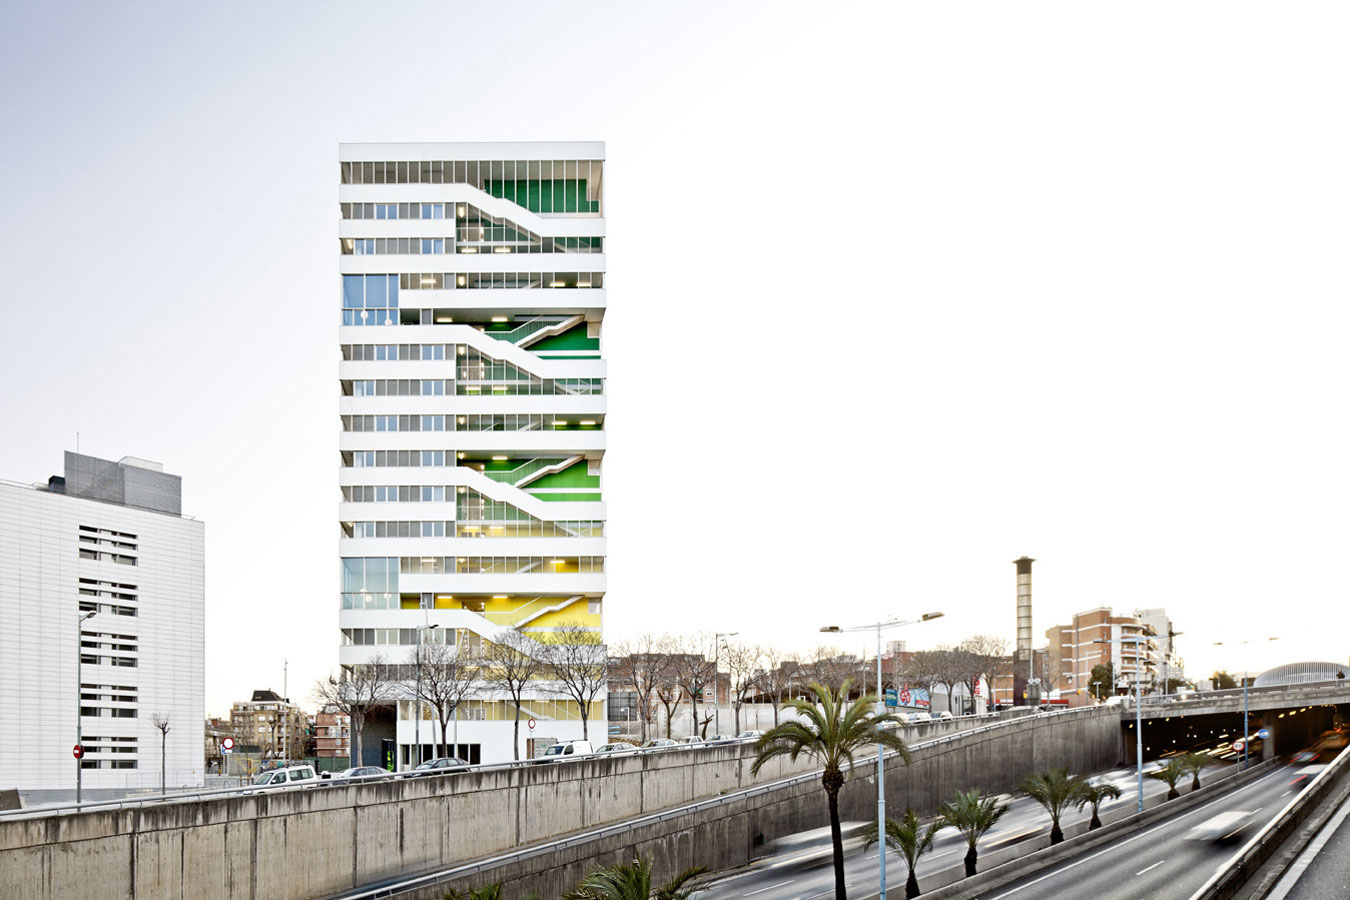 Julia Tower by Pau Vidal, Sergi Pons & Ricard Galiana | Yellowtrace